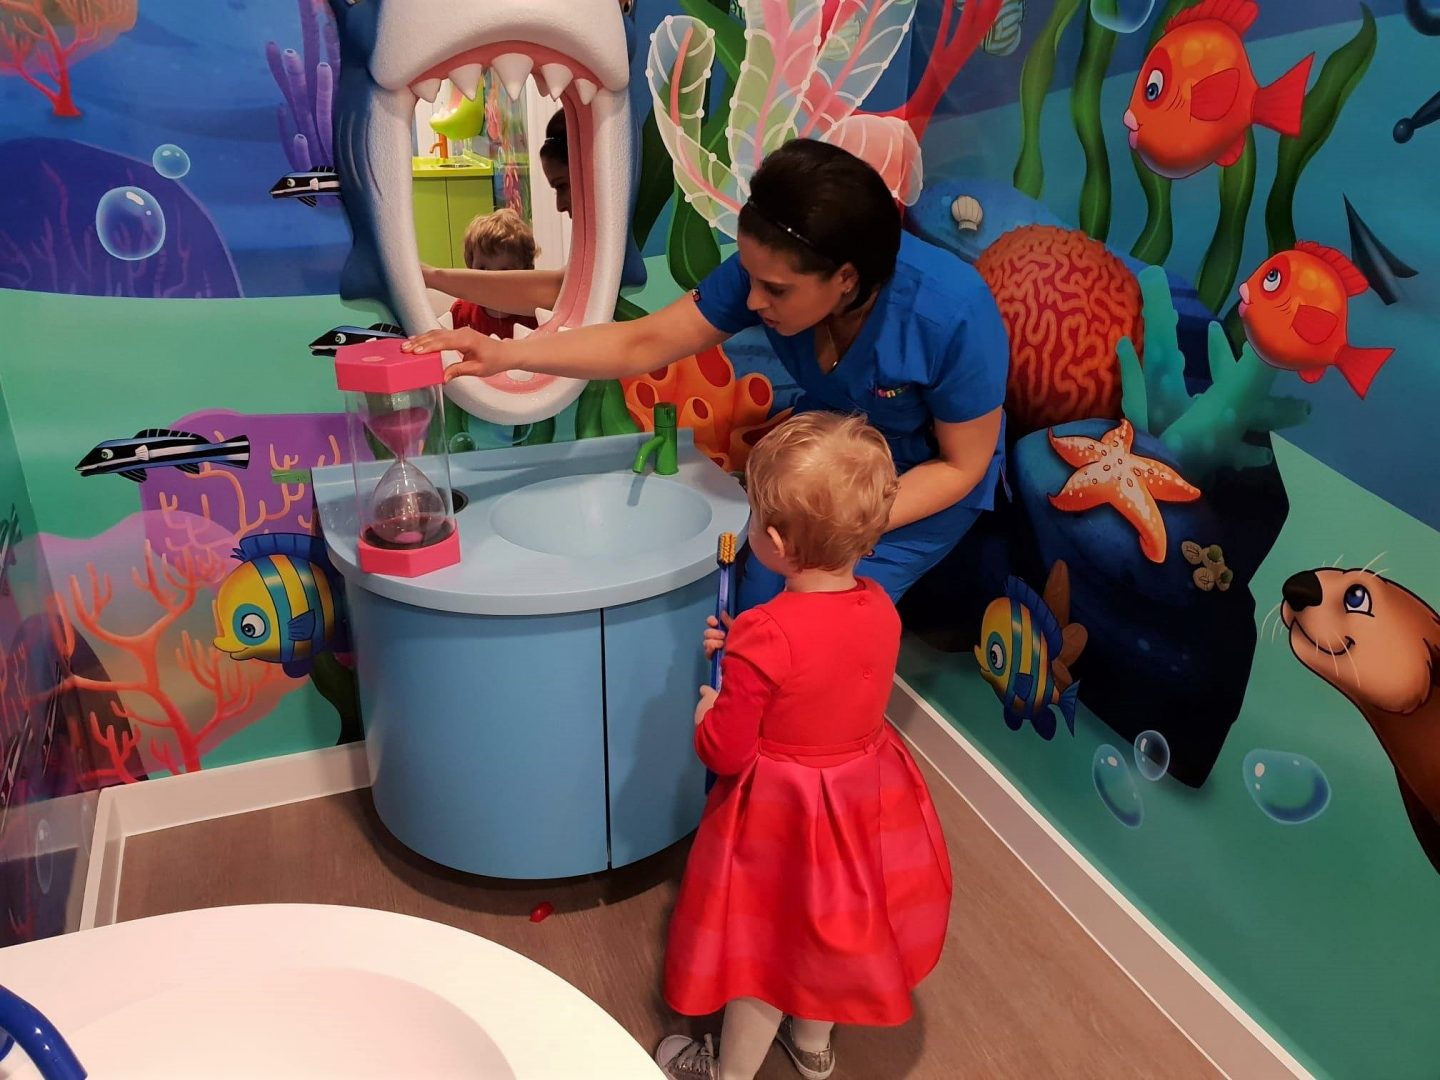 Dr Tooth Fairy at Happy Kids Dental, Chelsea showing how to brush teeth